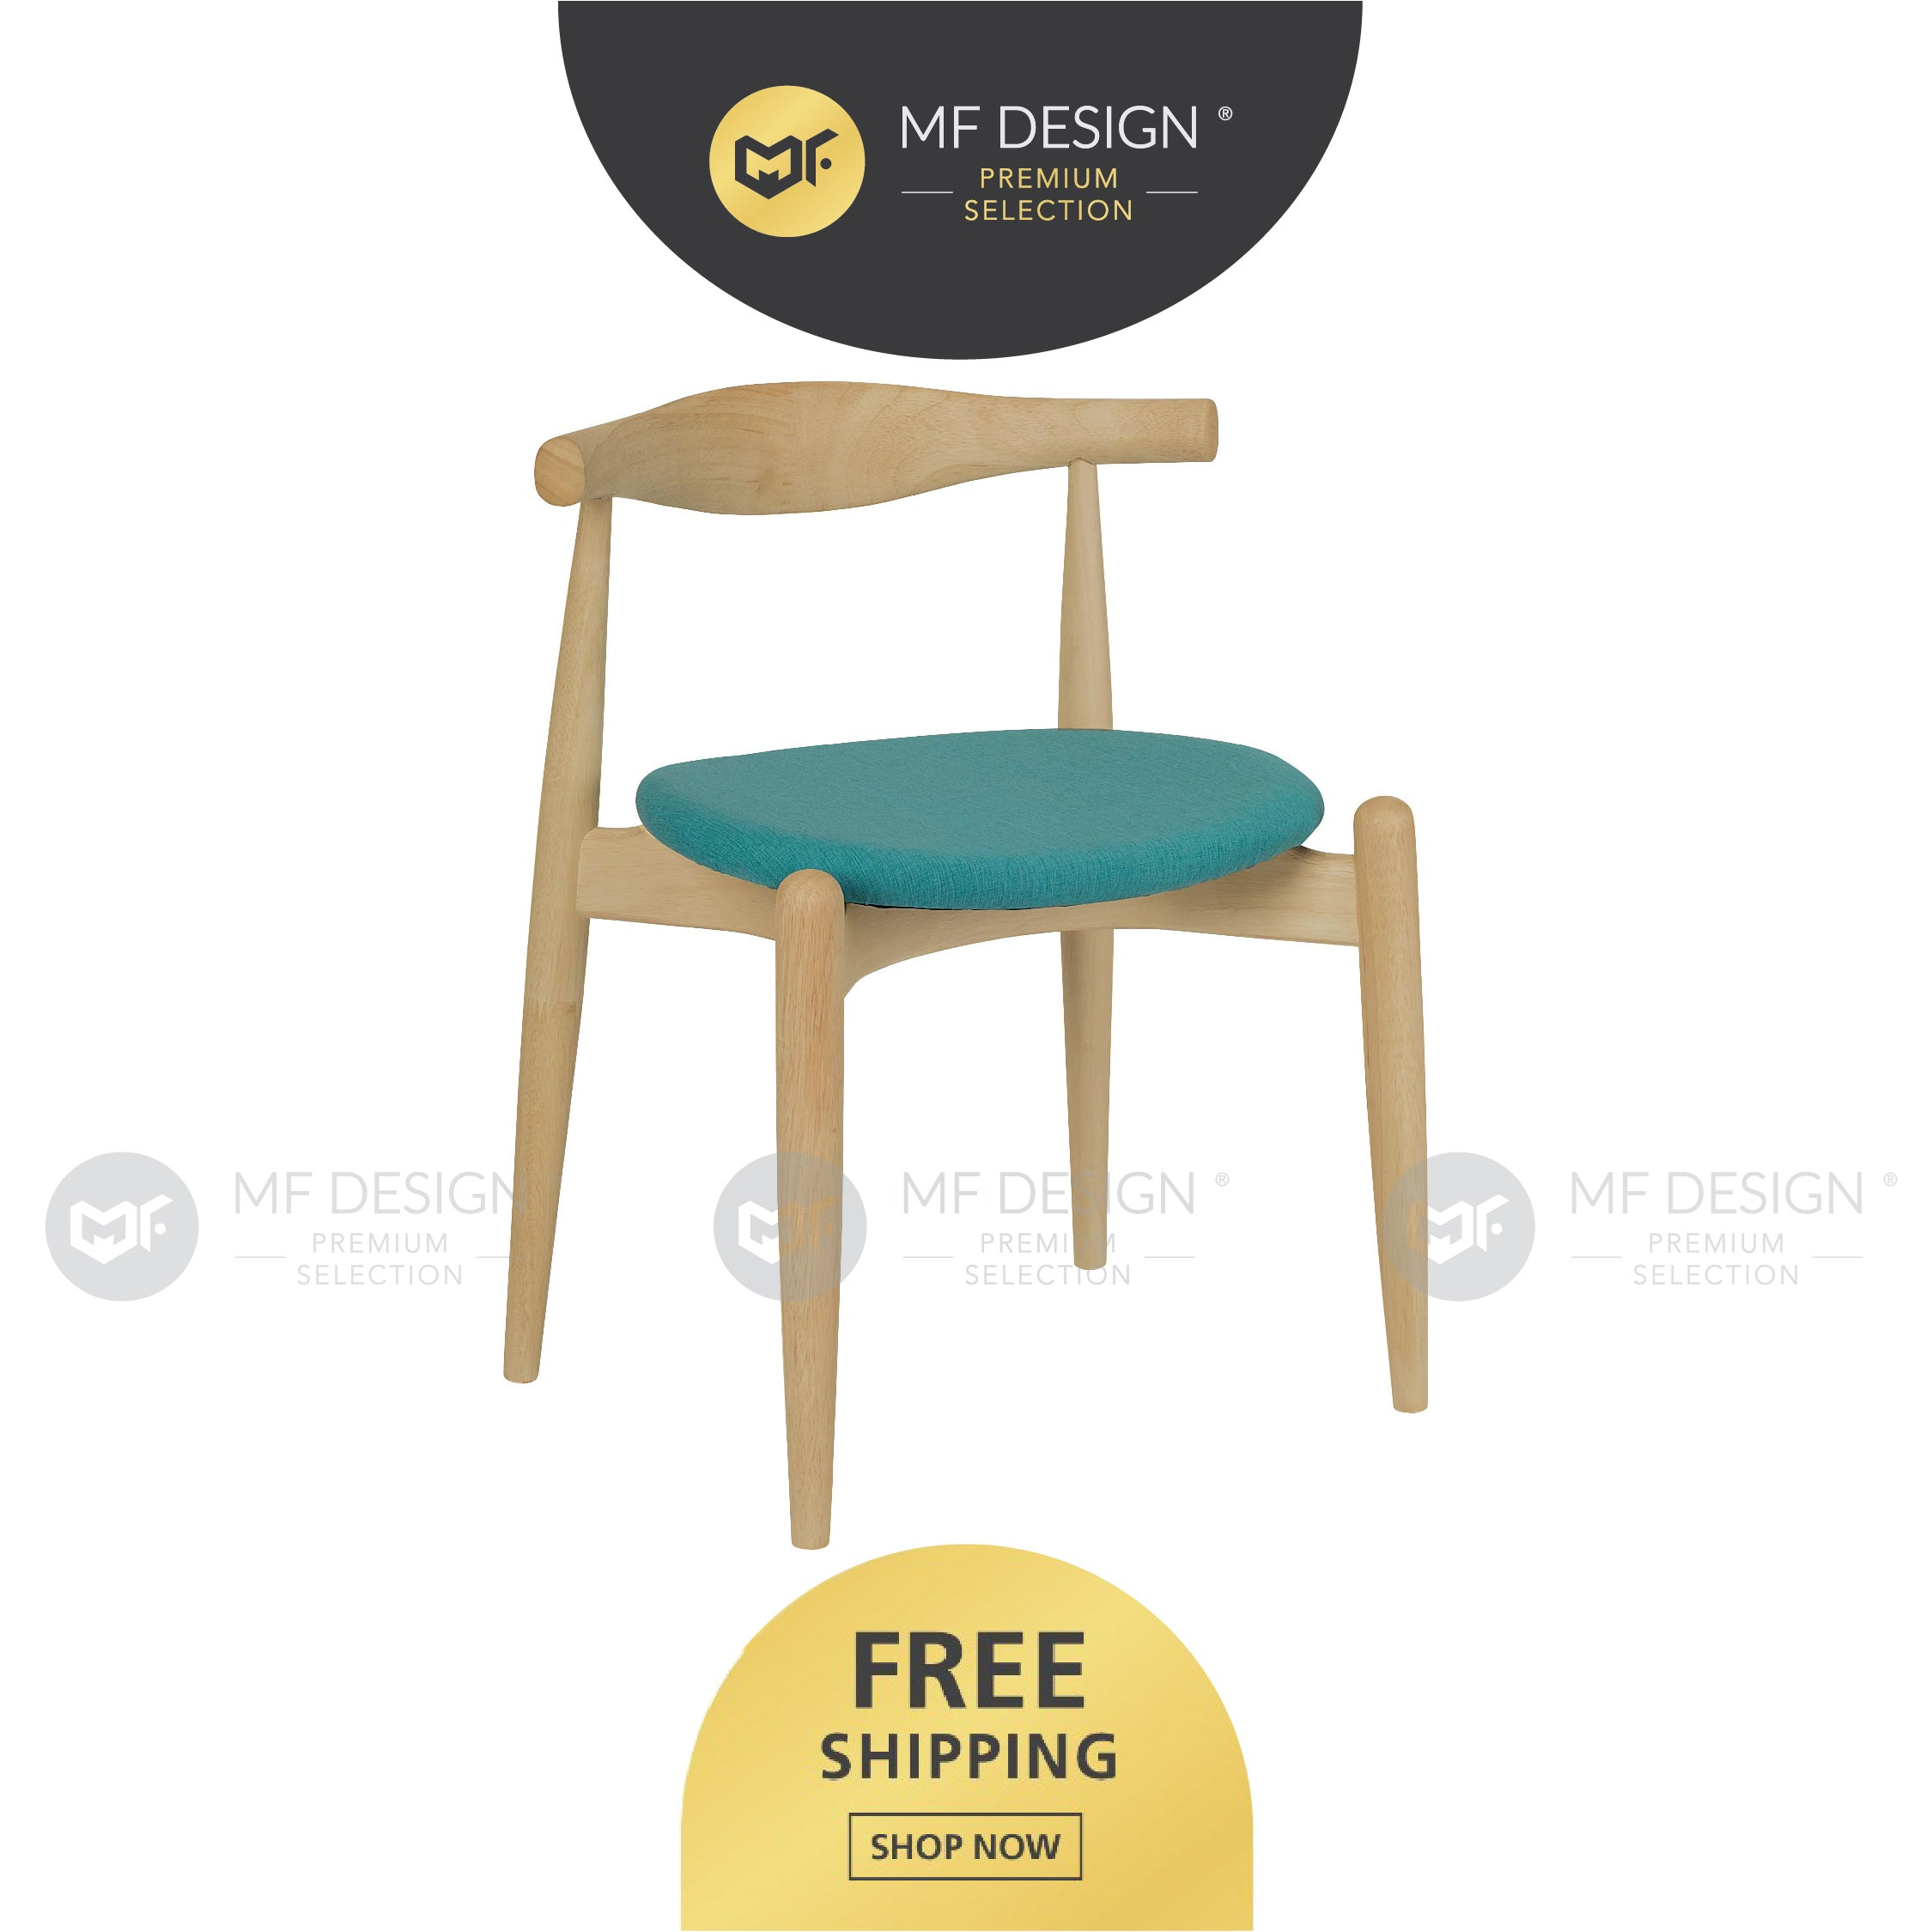 MFD Premium Bella Dining Chair / kerusi / chair